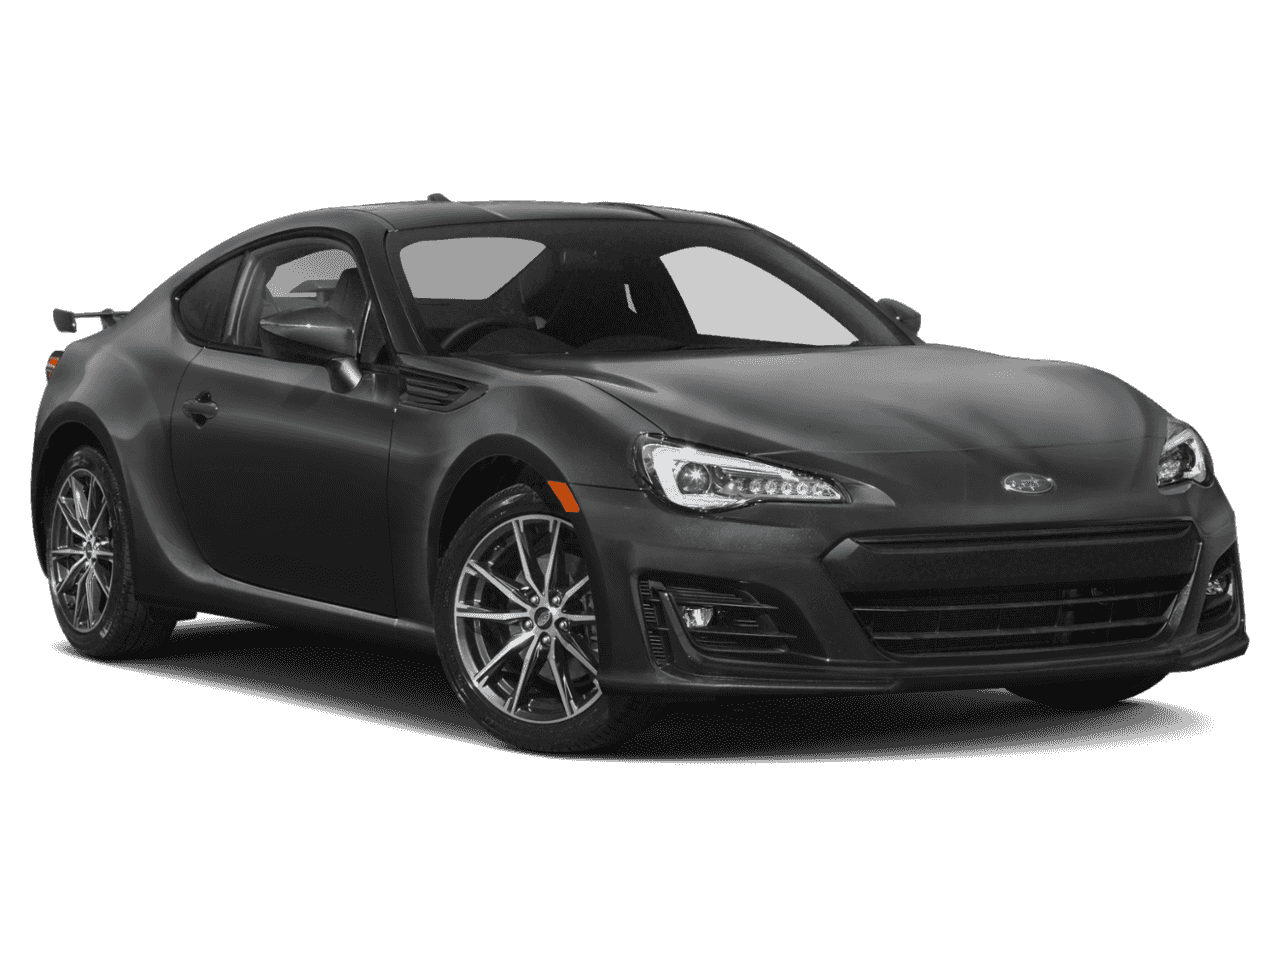 "2020 Subaru<br/><span class=""vdp-trim"">BRZ Limited RWD 2dr Car</span>"